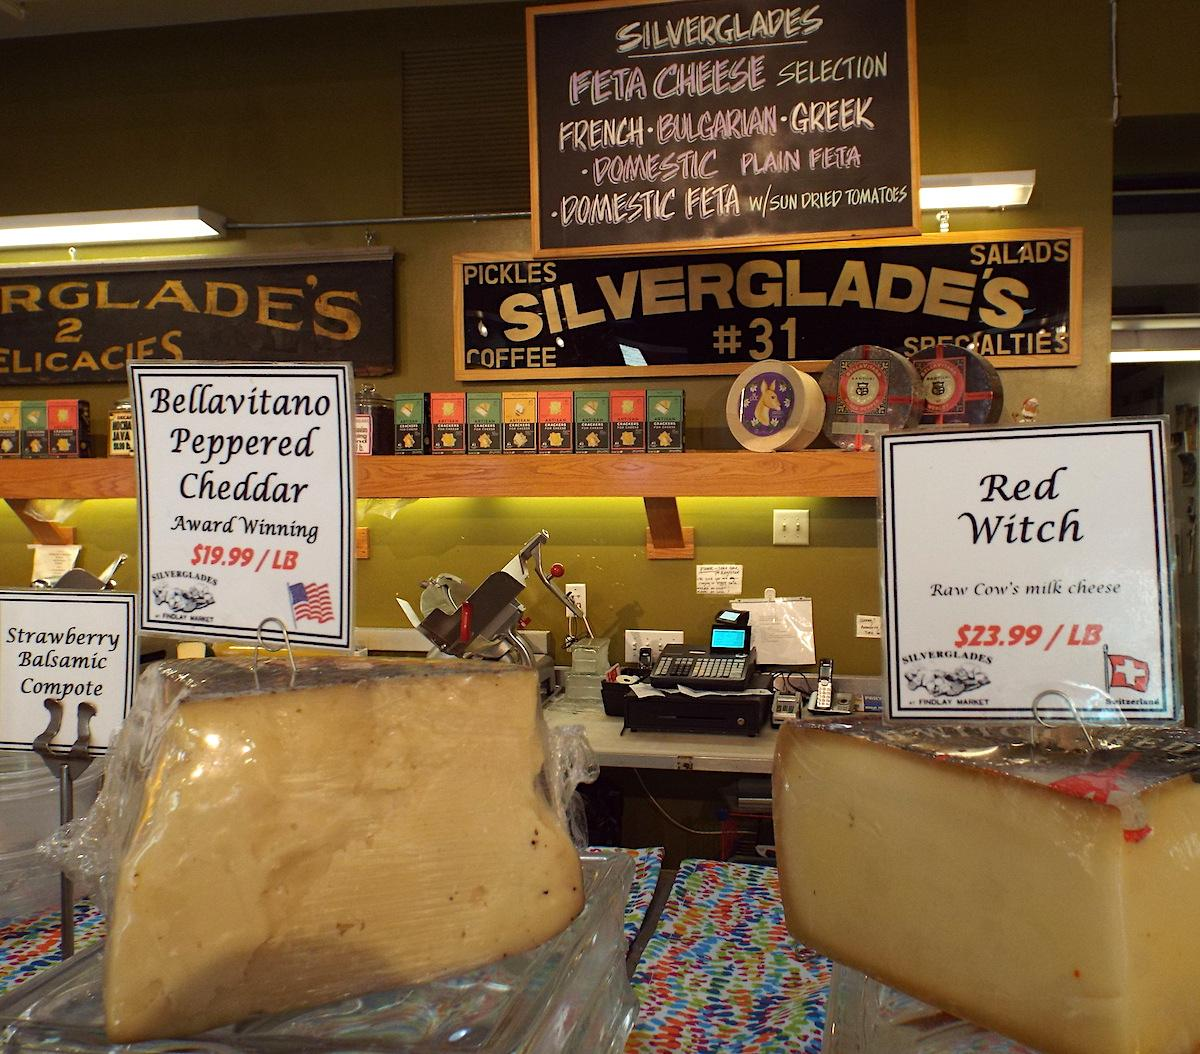 For 15 years, Downtowners have enjoyed lunch at Silverglades Deli. But for nearly a century, the Silverglade family has served a unique variety of over 200 cheeses, lunch meats, charcuterie boards, and tradition to the people of Cincinnati. Silverglades has two locations: one on East 8th Street Downtown, and another in Findlay Market. ADDRESS: 236 East 8th Street (45202) / Image: Jessie Stringfield-Eden // Published: 9.8.18<br>